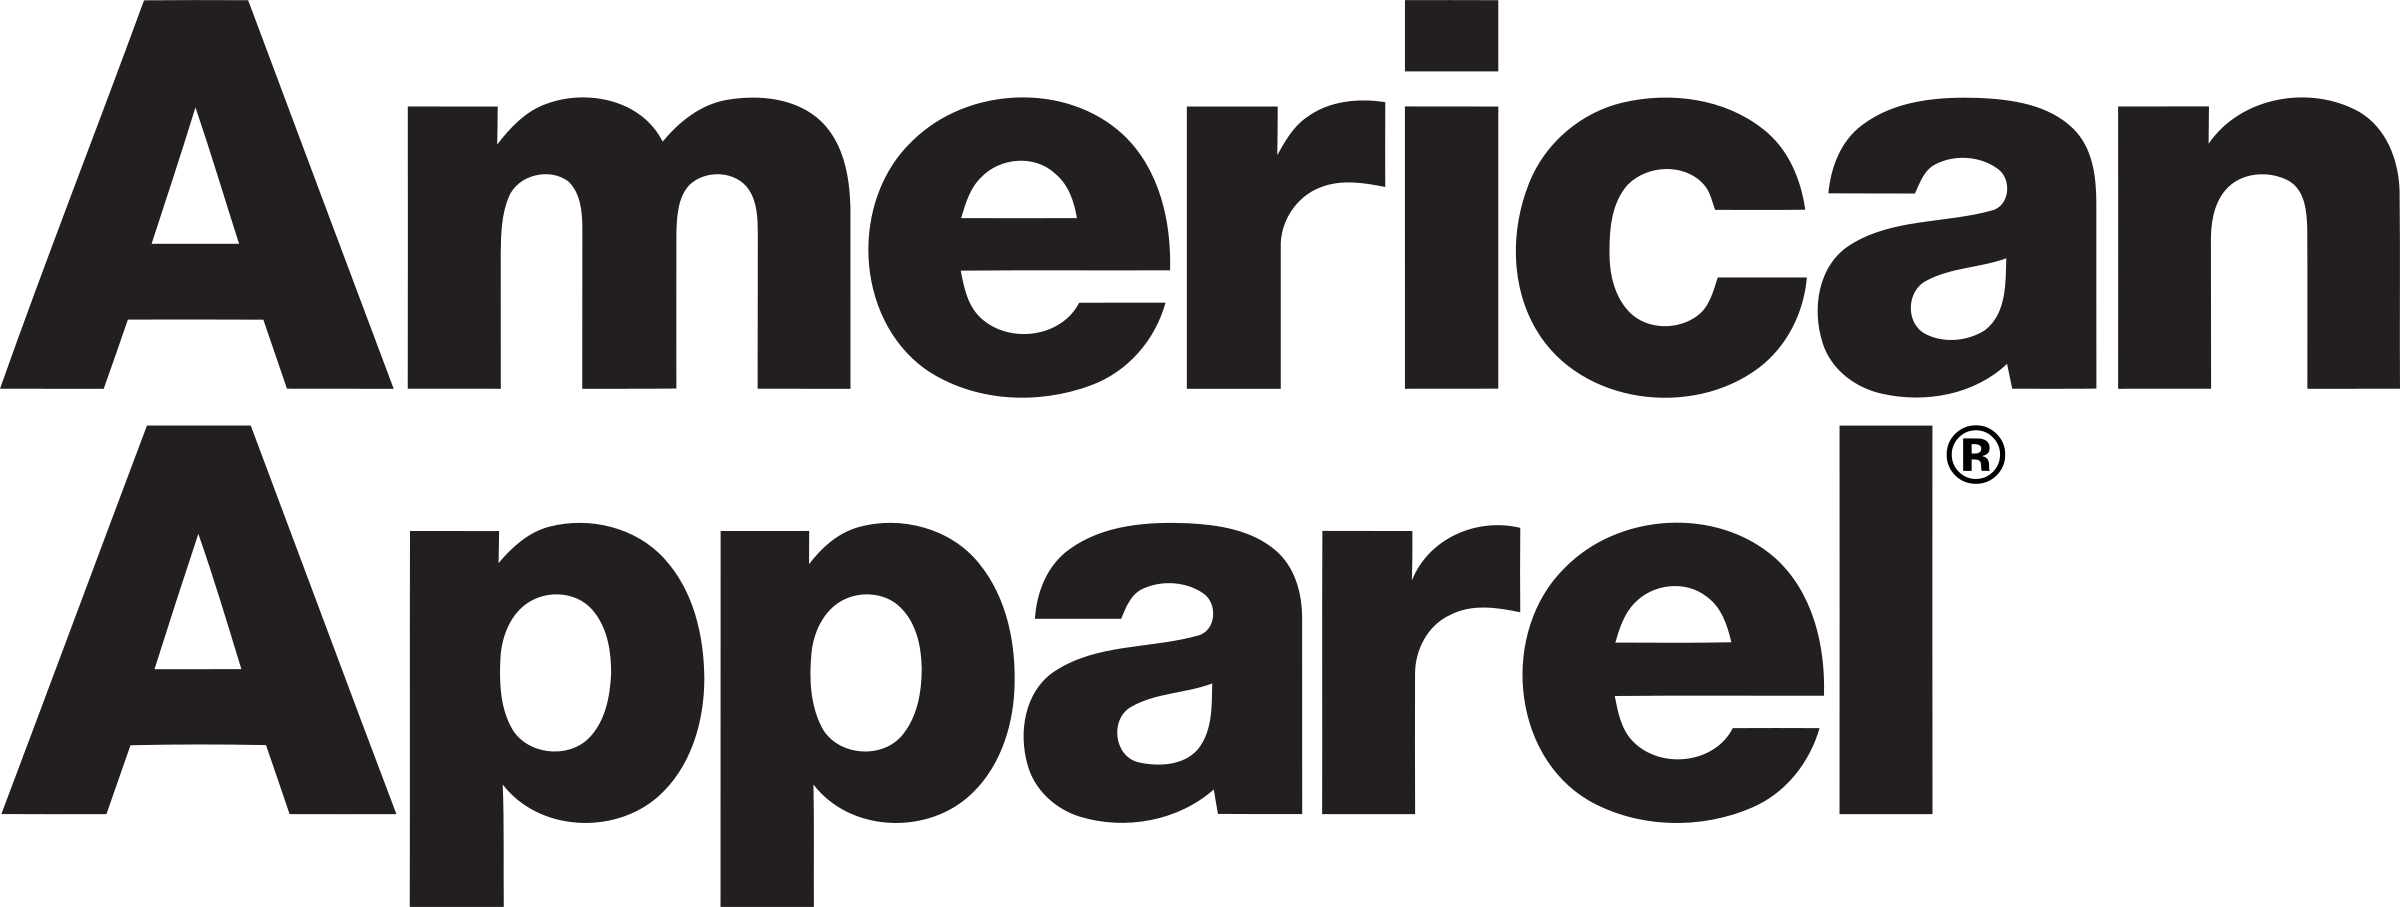 american-apparel-2-logo-png-transparent.png